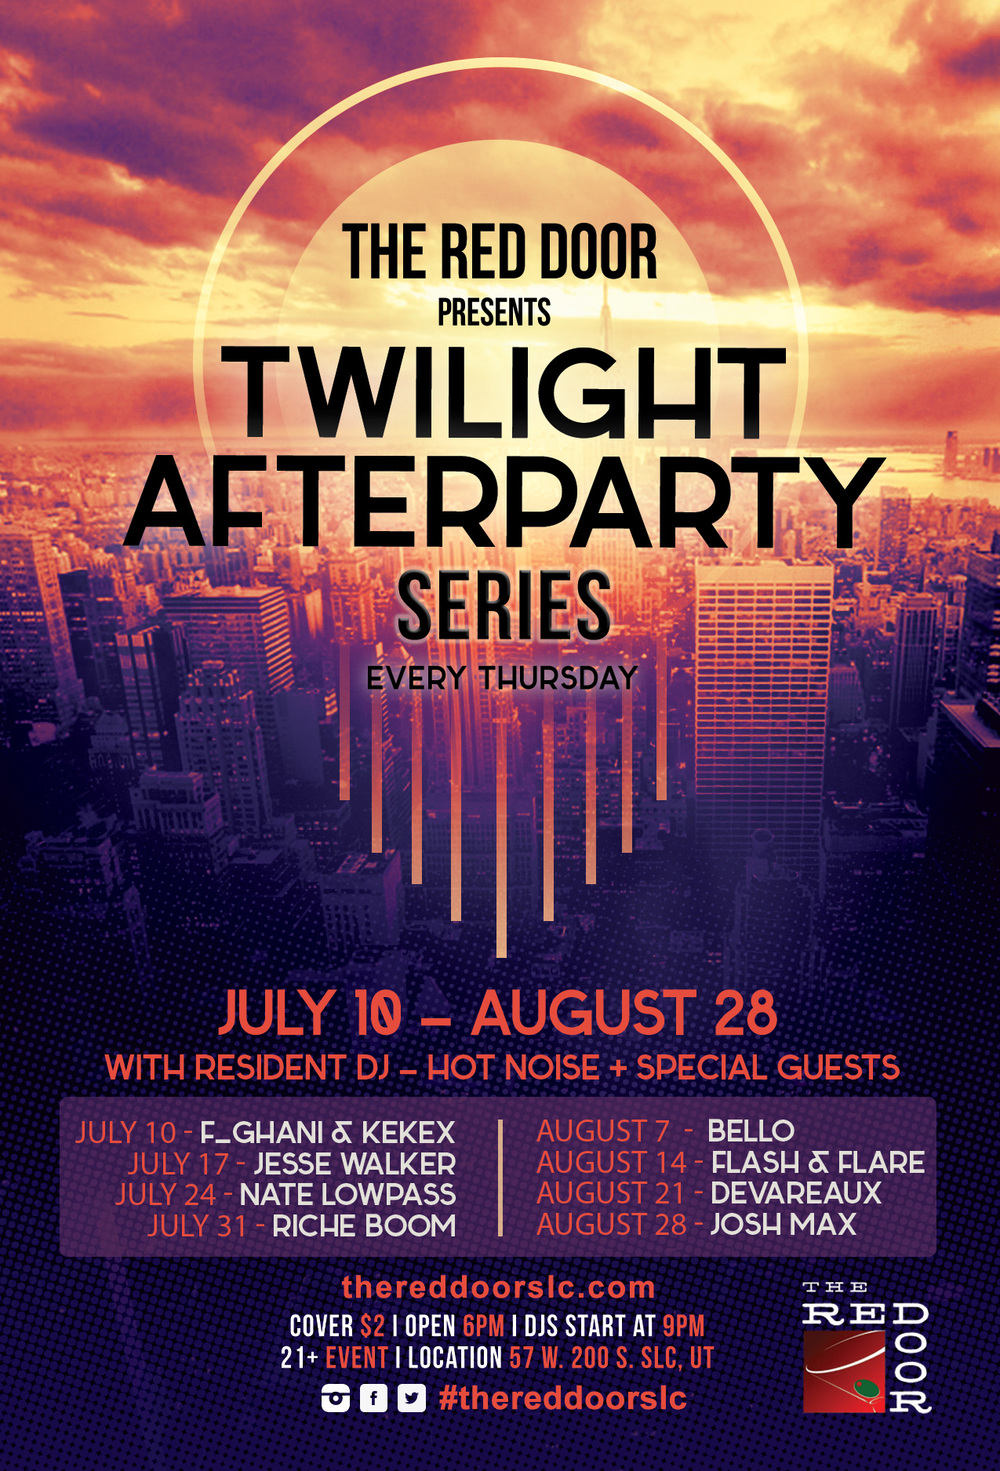 Red Door Twilight Afterparty Series